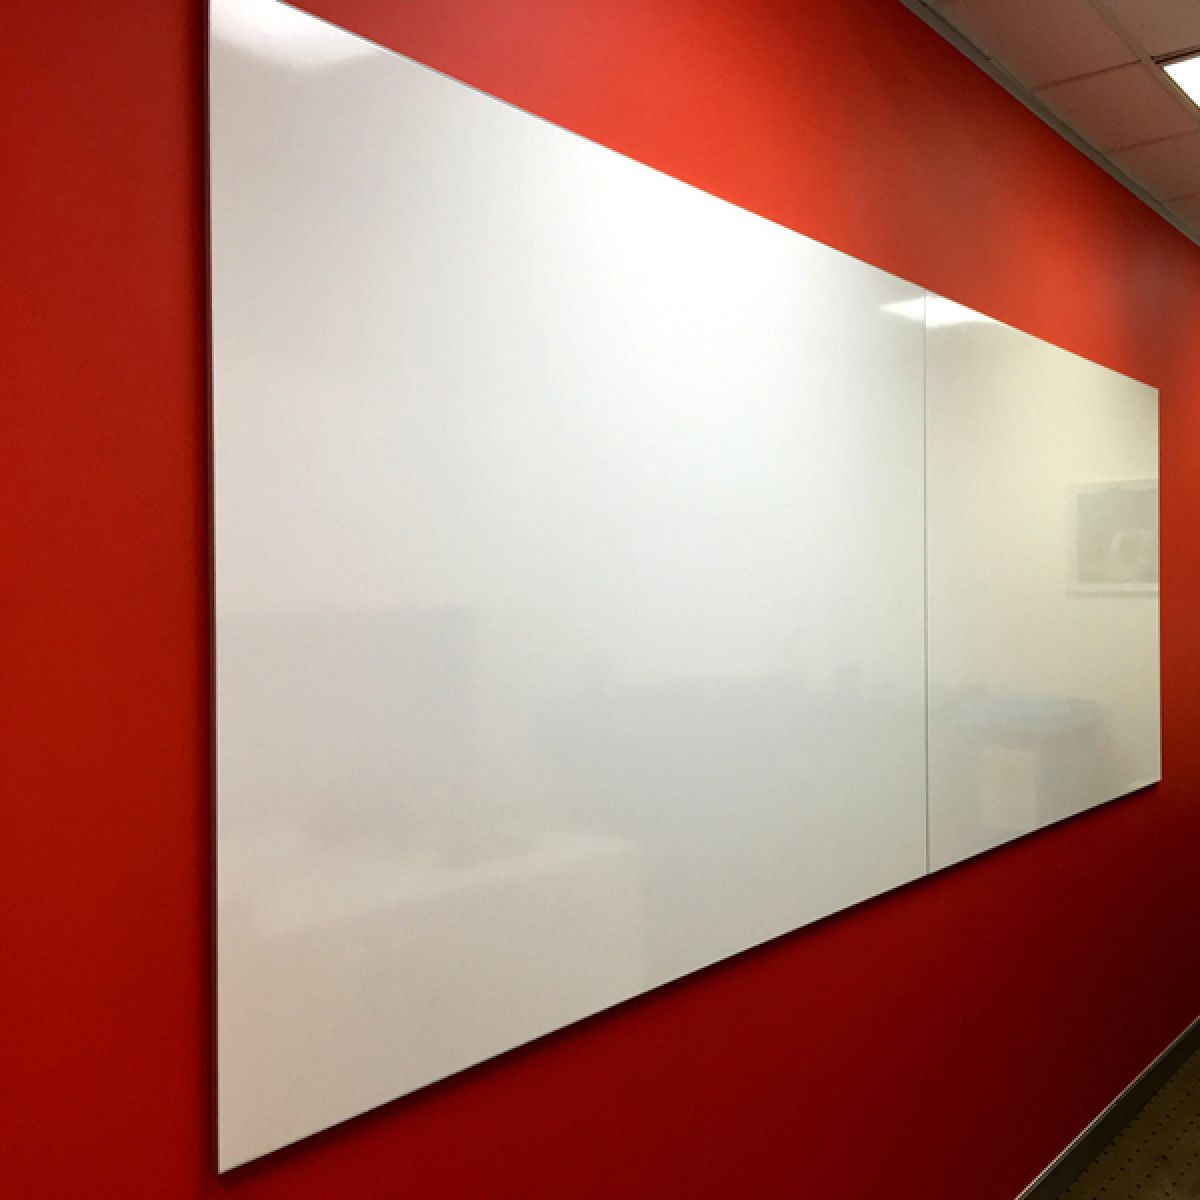 Magnetic Whiteboard Perth